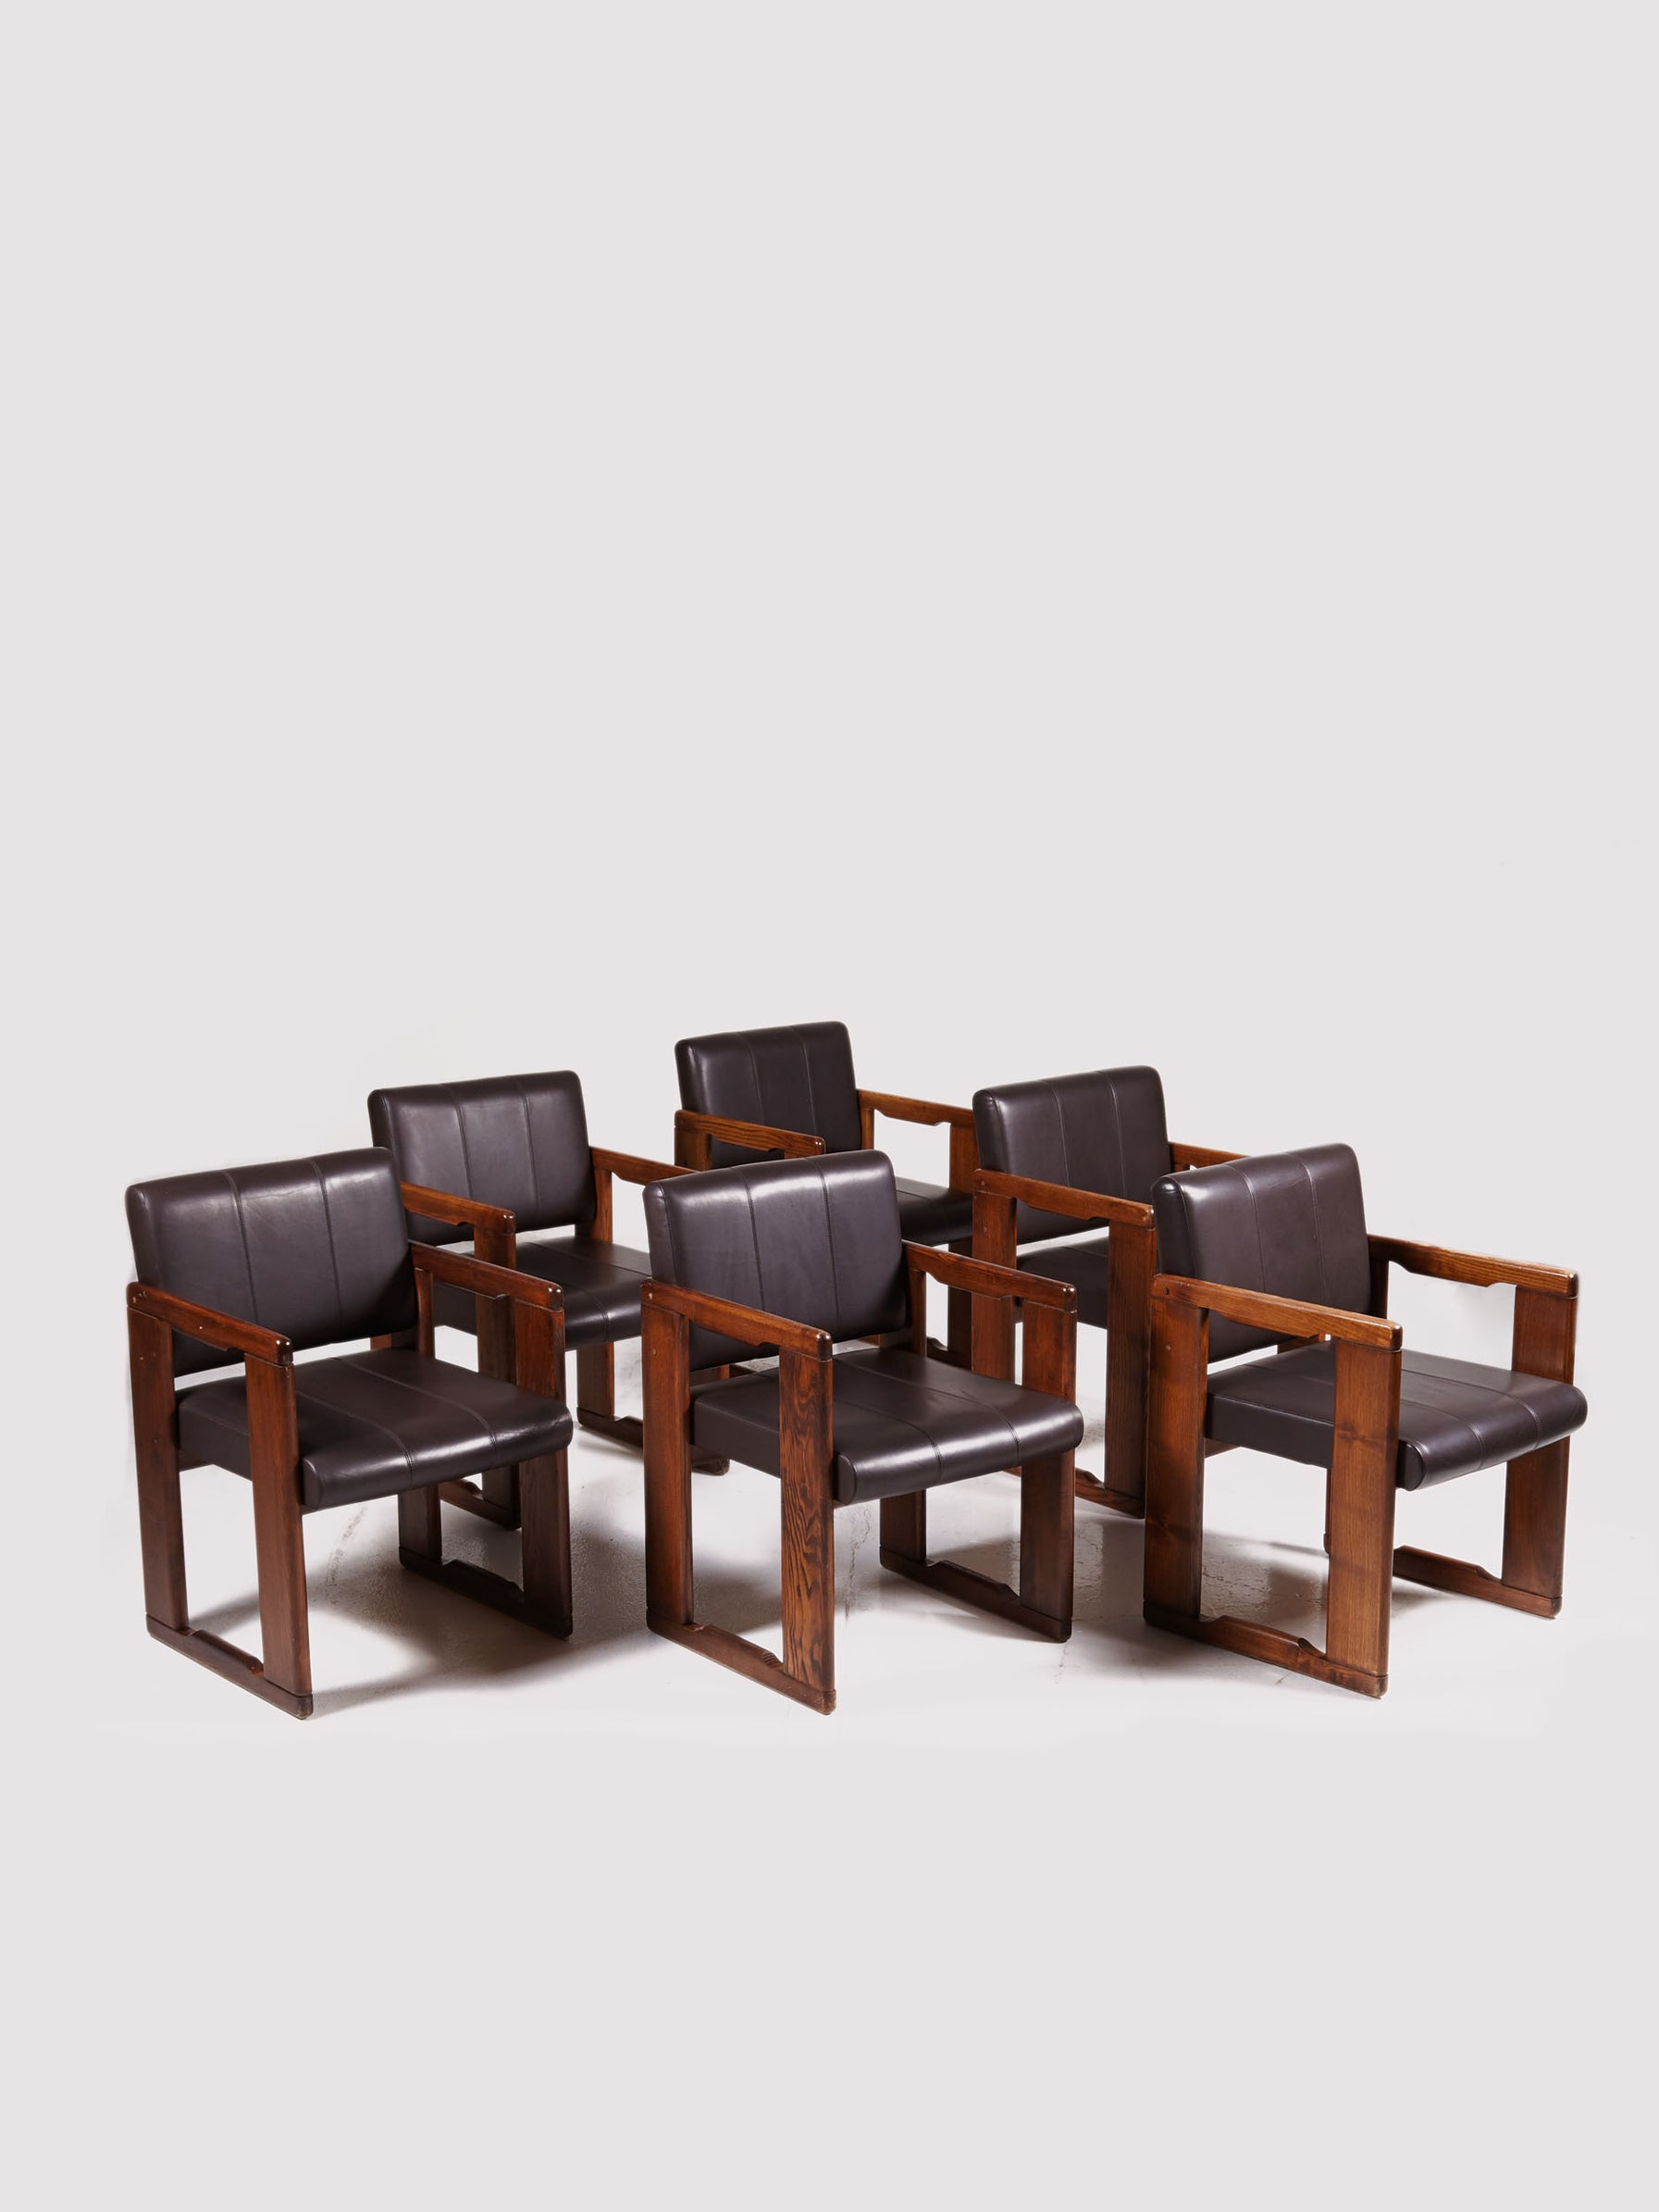 Italian 6 Armchair Set by Tobia Scarpa